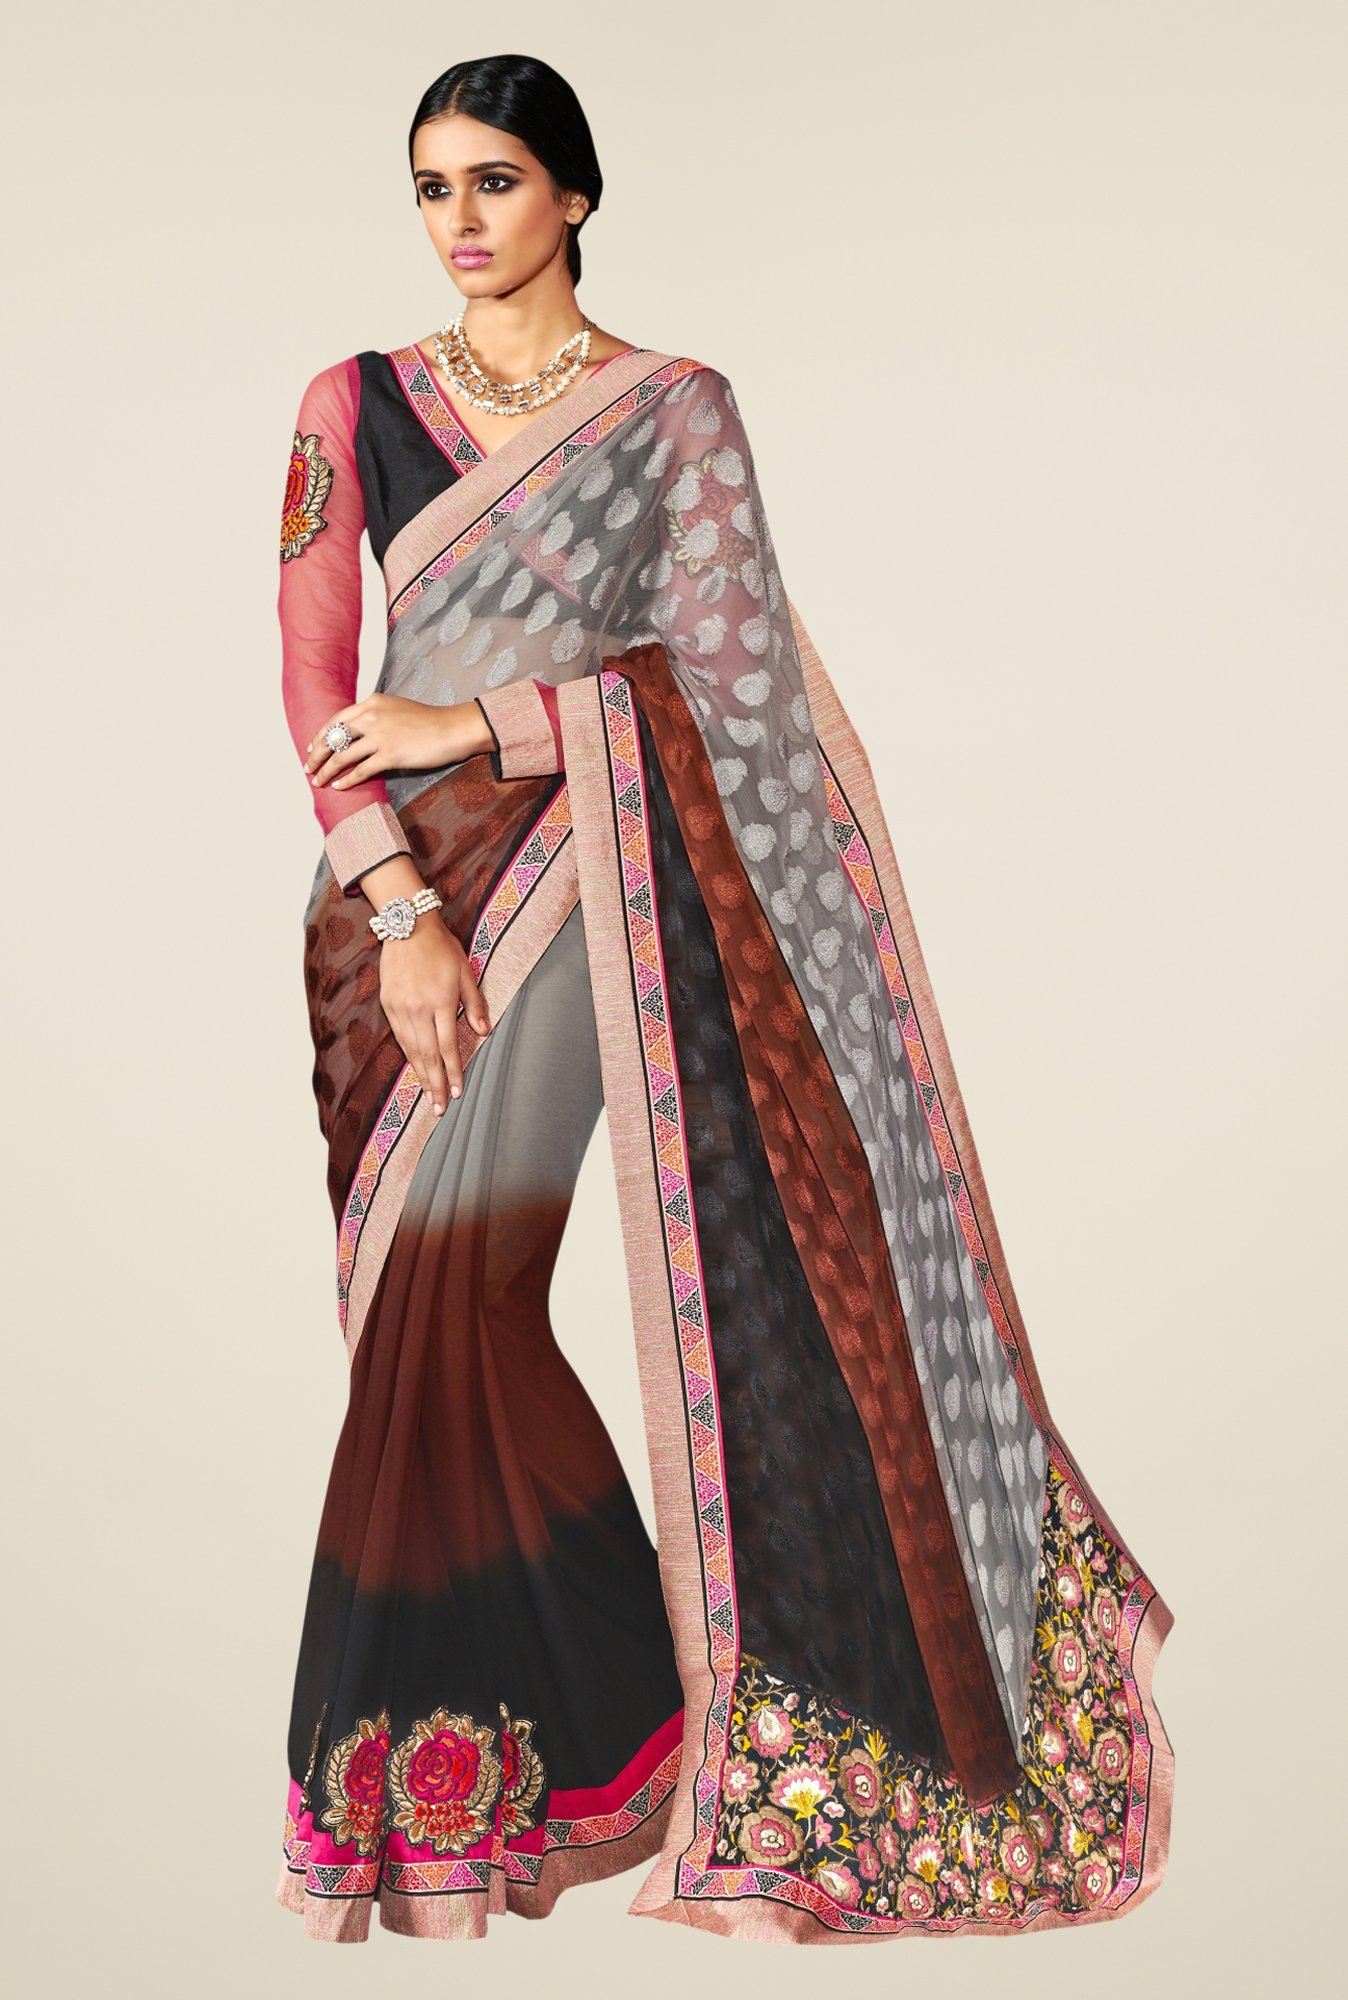 Triveni Brown & Grey Embroidered Faux Georgette Saree